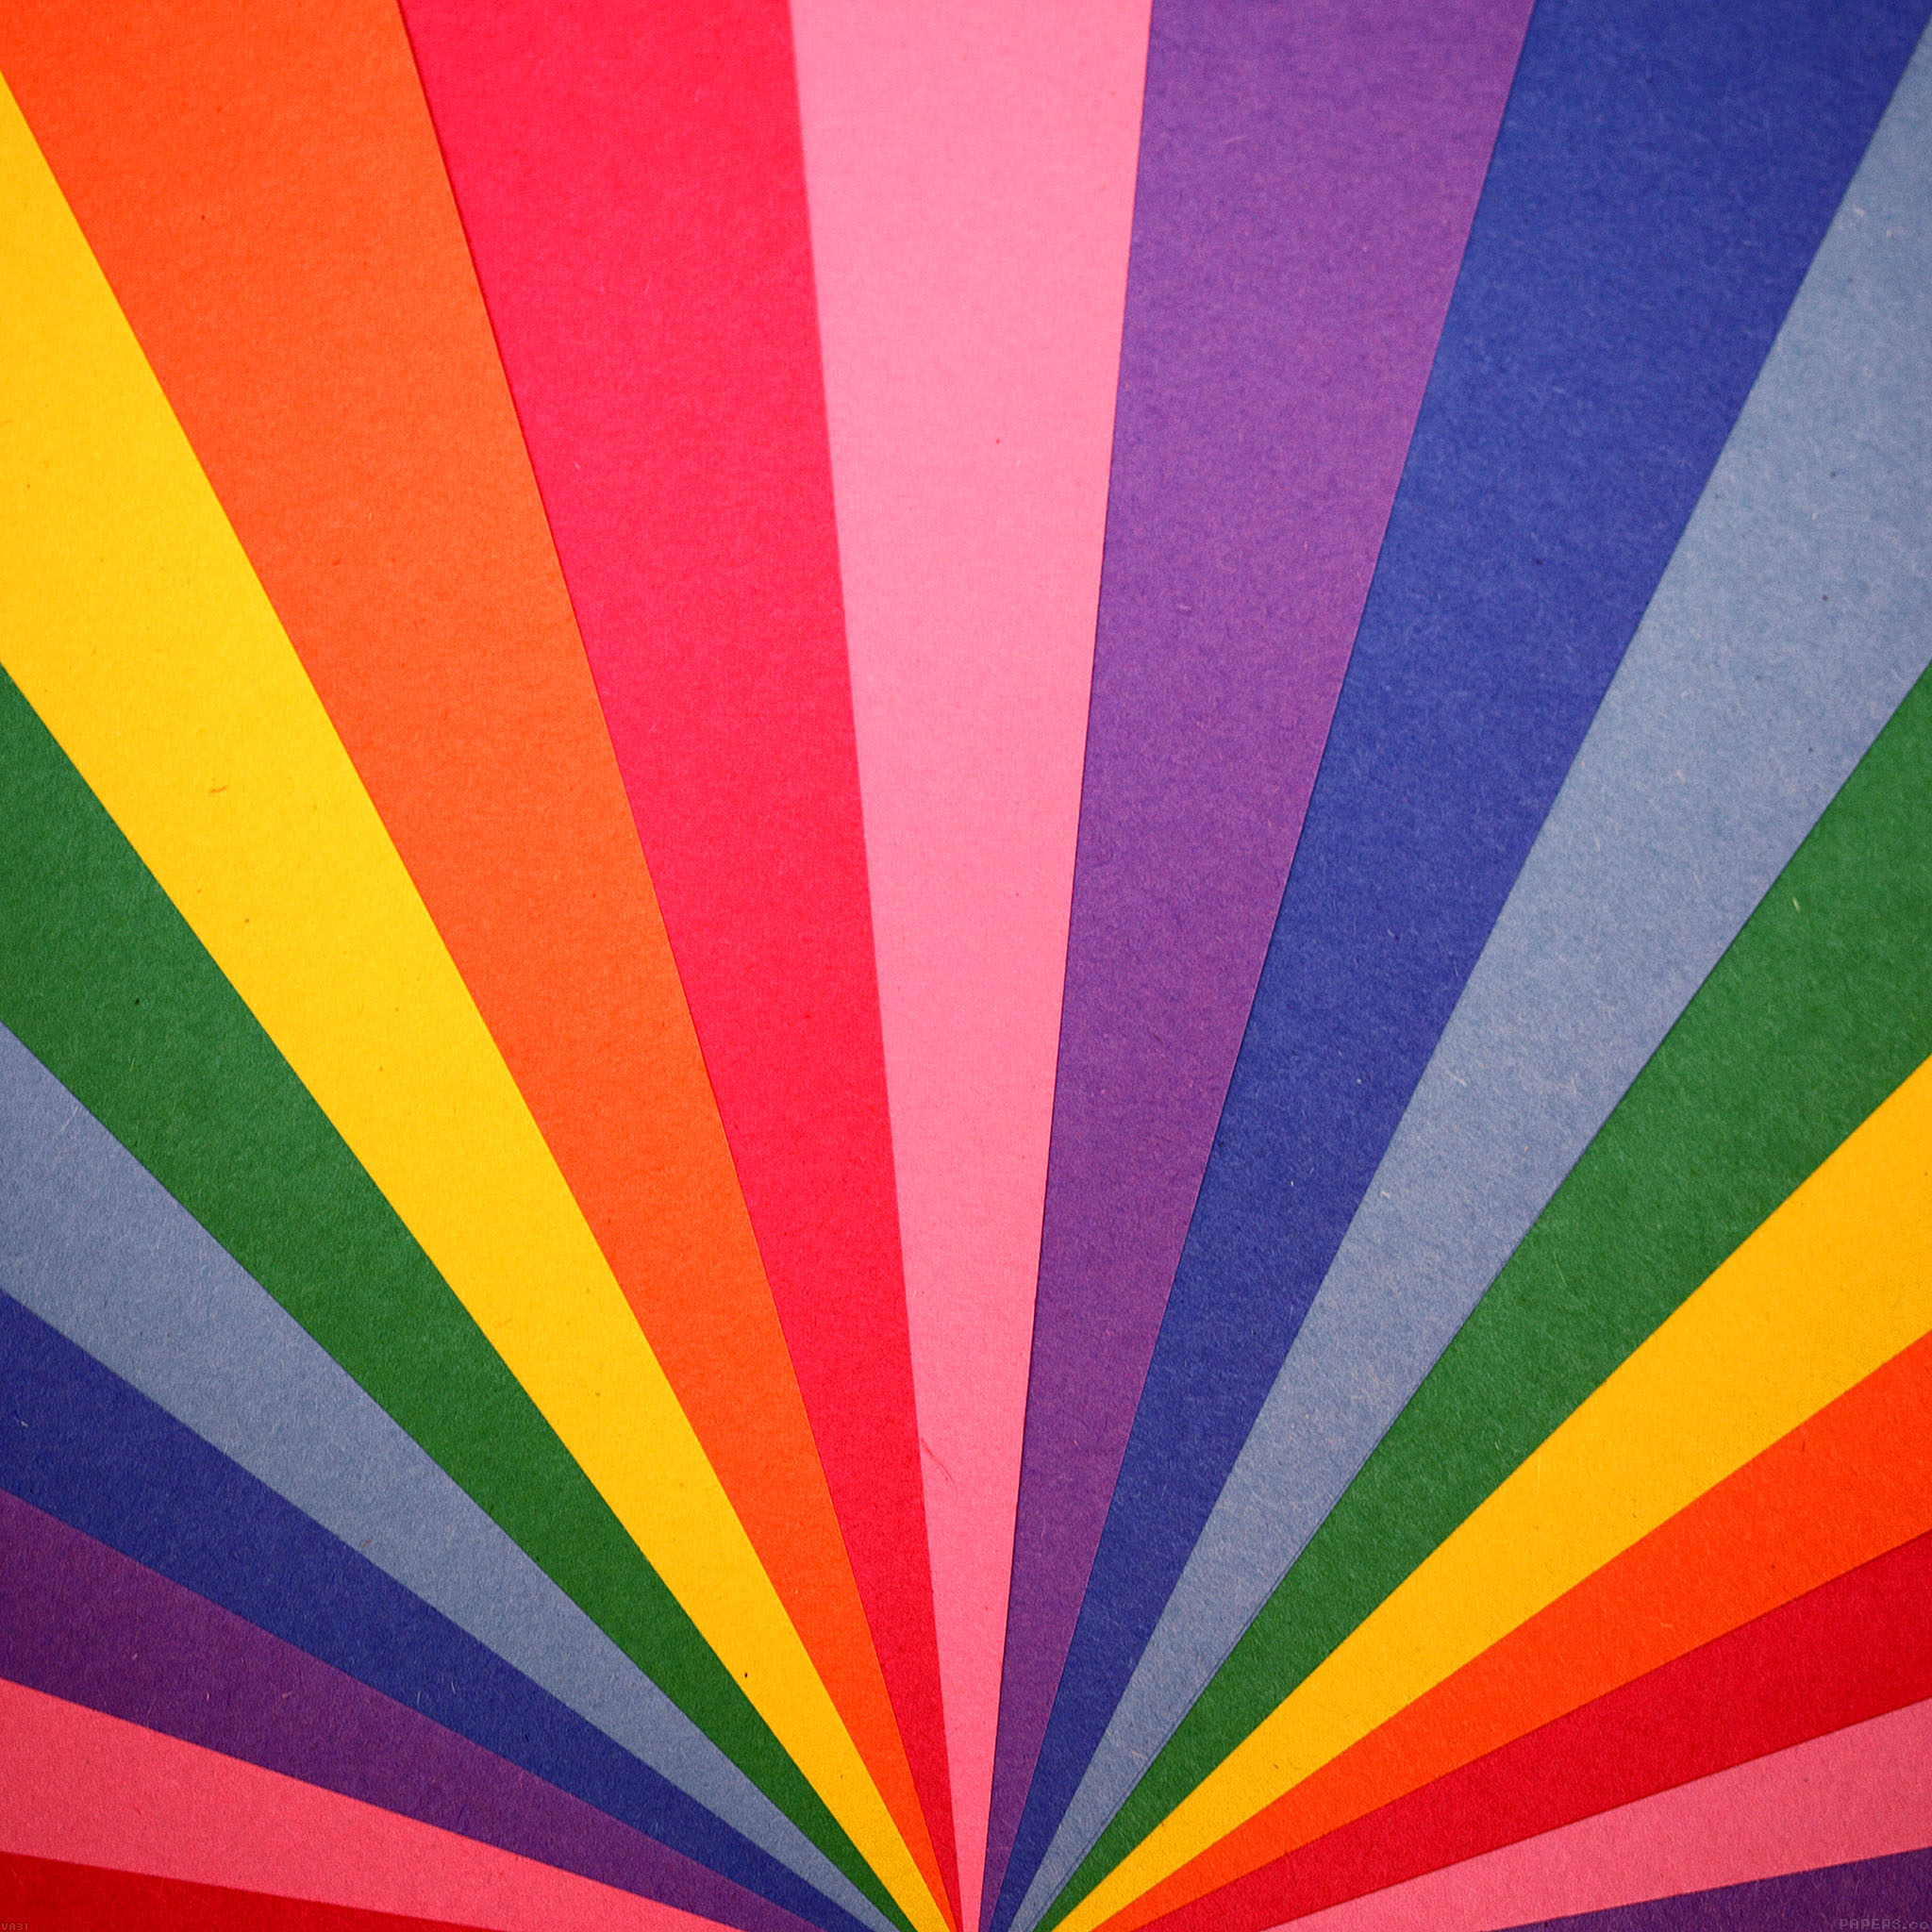 va31-rainbow-light-pattern - Papers.co